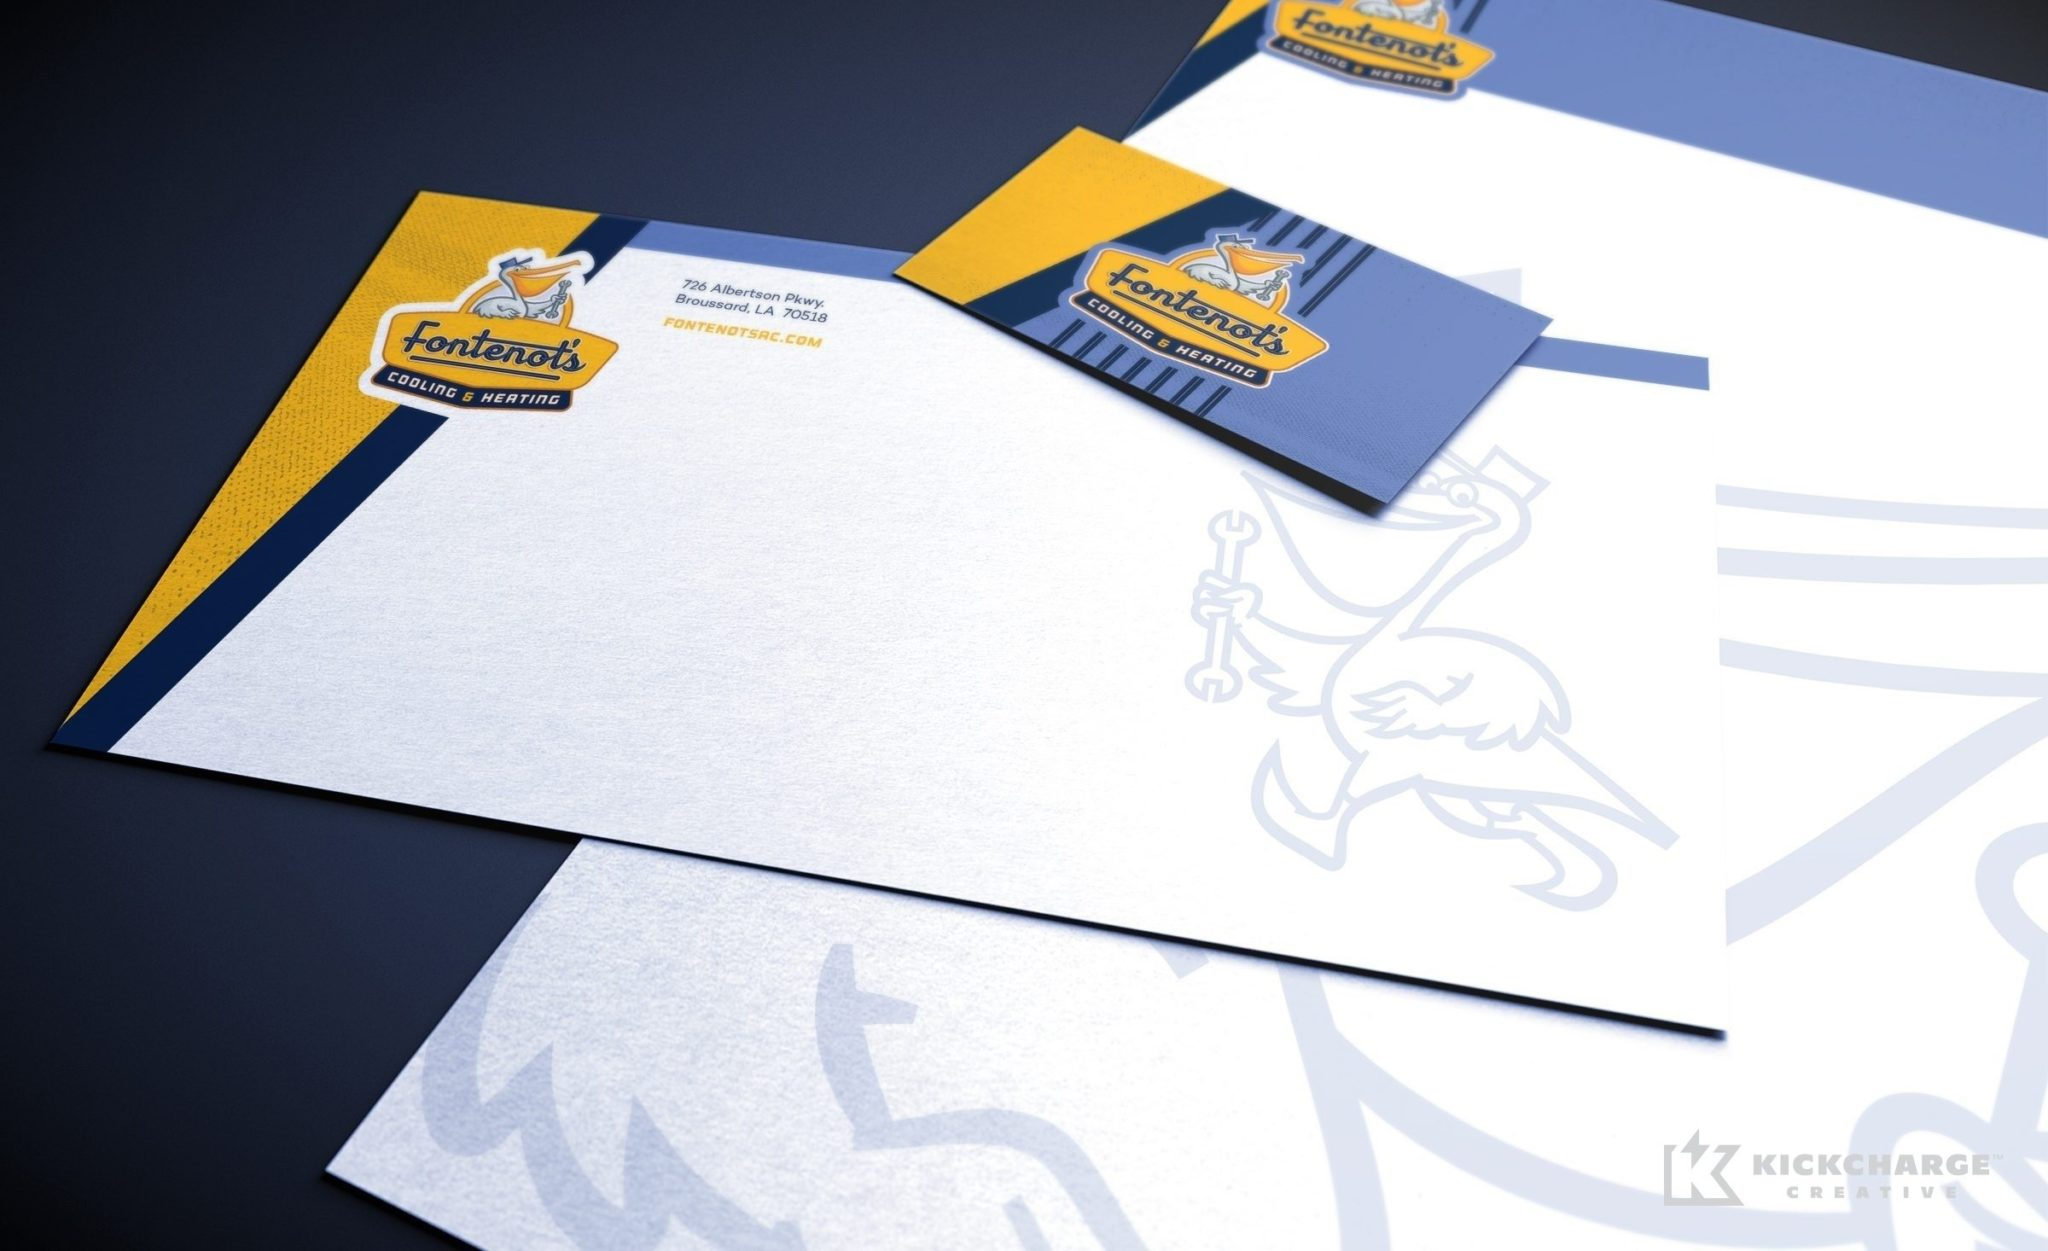 Stationery design for Fontenot's Air Conditioning & Heating located in Louisiana.